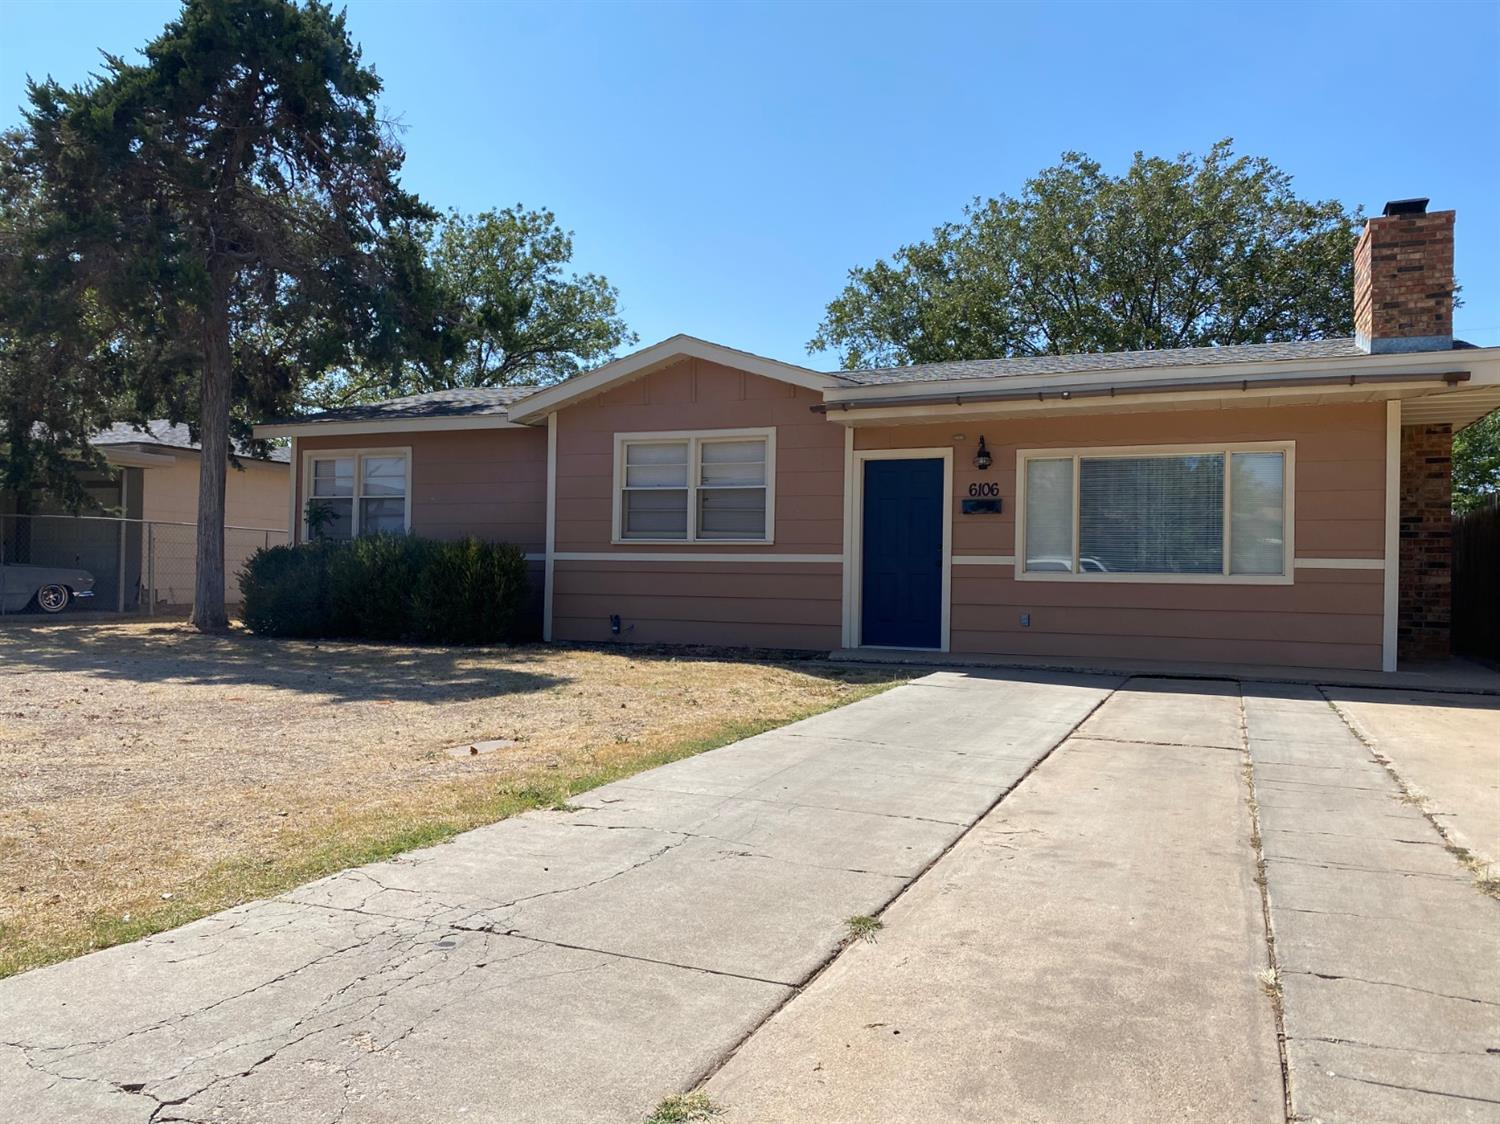 BIG spacious 4/2/1 home near Lowrey Field. Completely renovated inside and out.  Currently rented for $1342